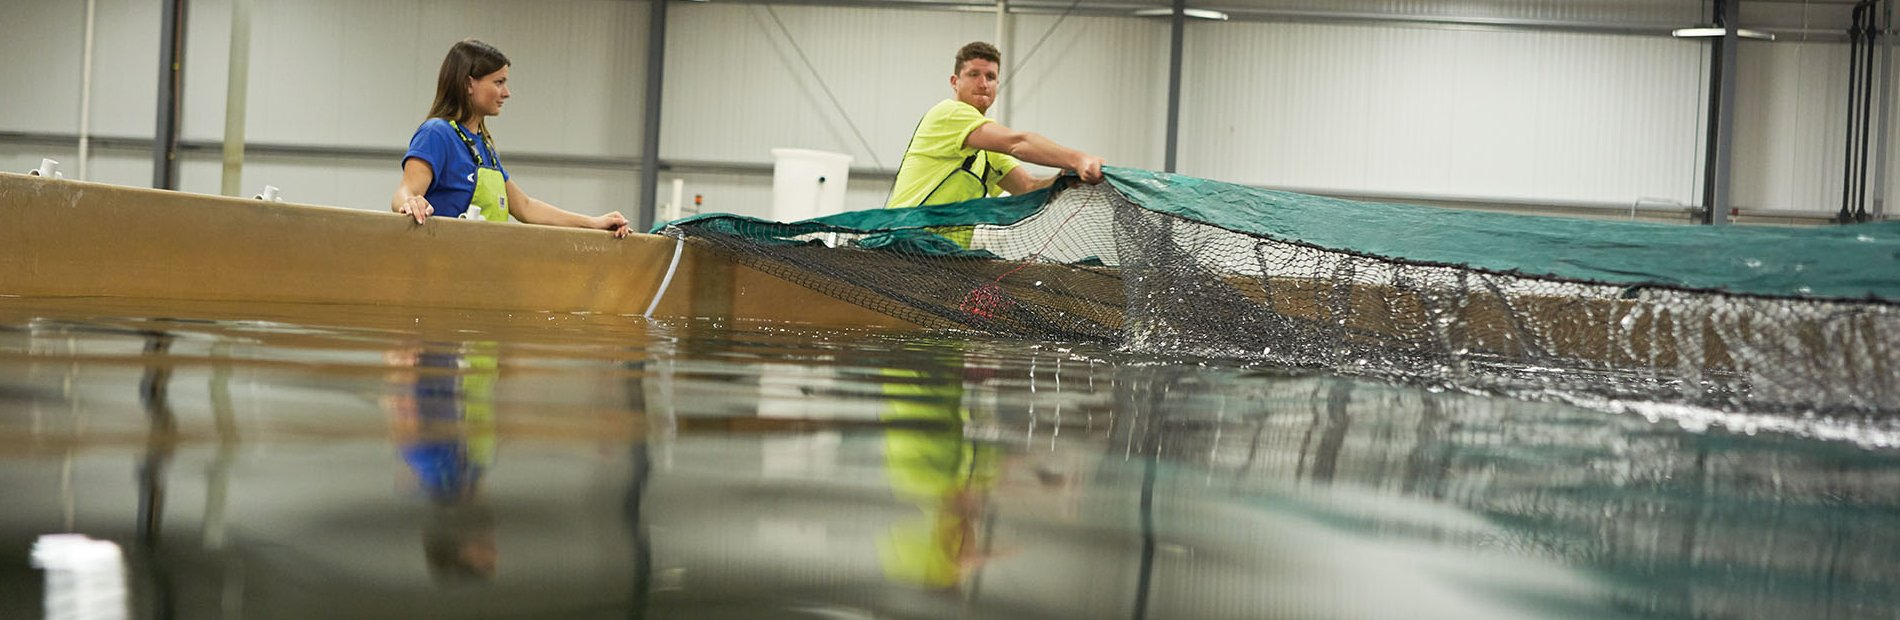 AquaBounty employees tending to nets located in the salmon tanks in facility